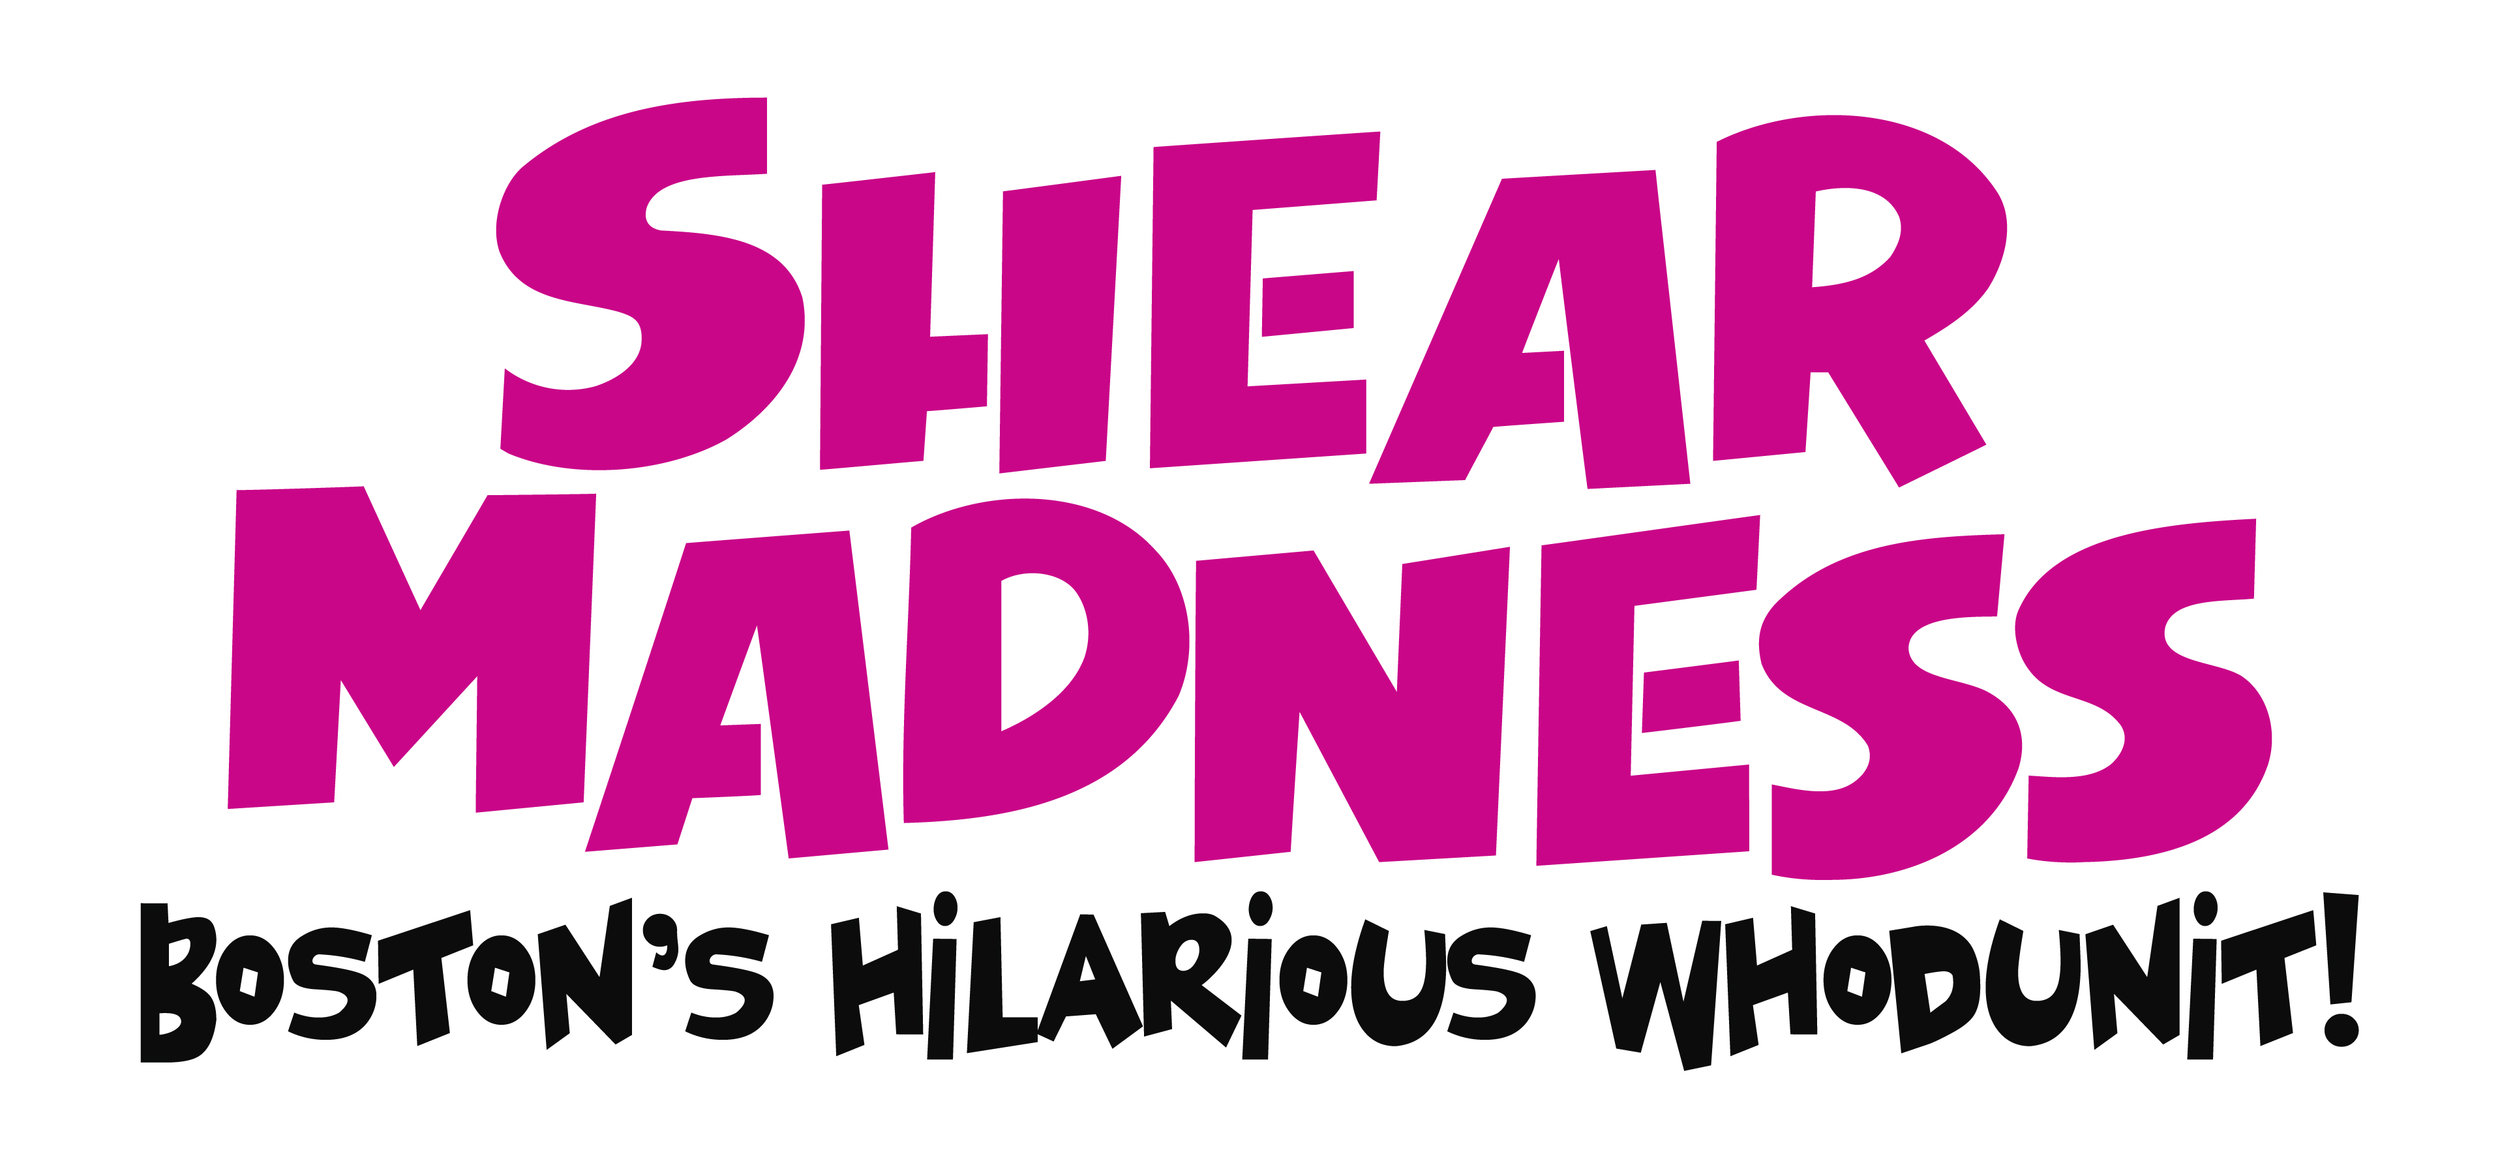 - Shear Madness is Boston's hilarious comedy-who-dunit where the audience solves the crime. Set in a unisex hair salon that is the scene of a whacky murder, the play is filled with up-to-the-minute spontaneous humor and is different every time you see it. Shear Madness holds the Guinness Book of World Records for the longest running non-musical play in American theater history. The show has run in 68 cities worldwide and is also currently running in Washington DC at the John F Kennedy Center for Performing Arts.